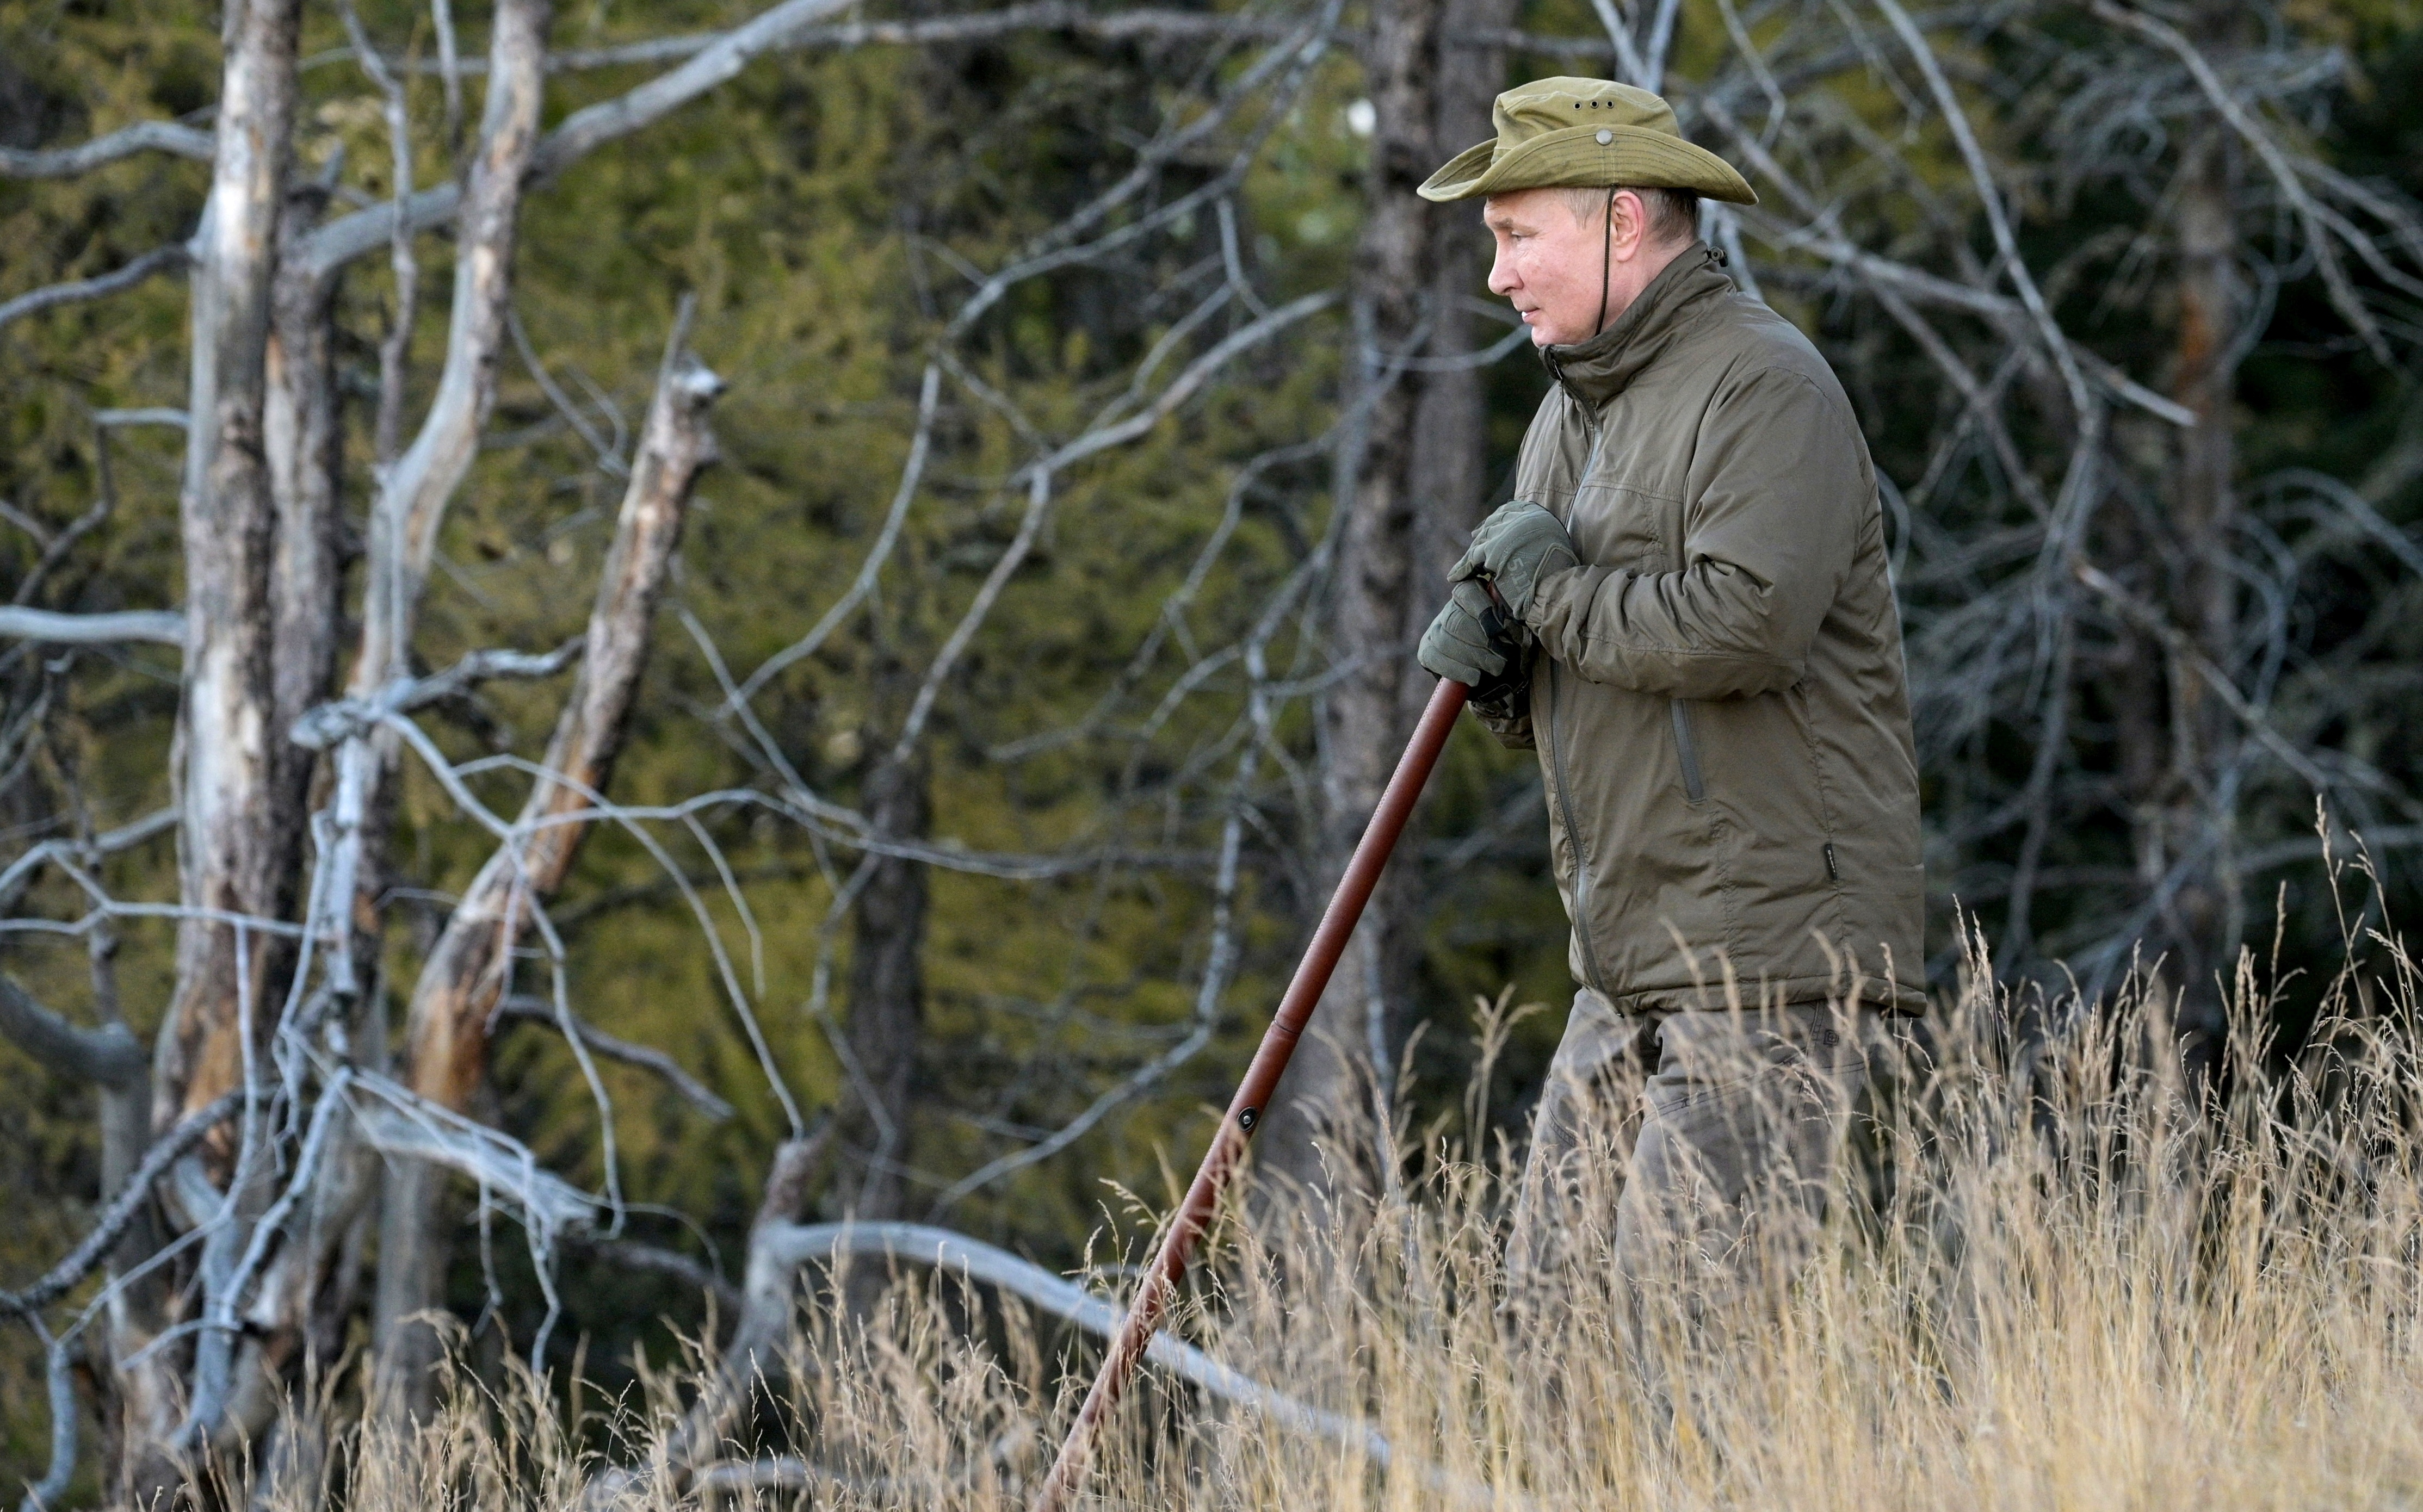 Russian President Vladimir Putin spends a short vacation at an unknown location in Siberia, Russia(via REUTERS)